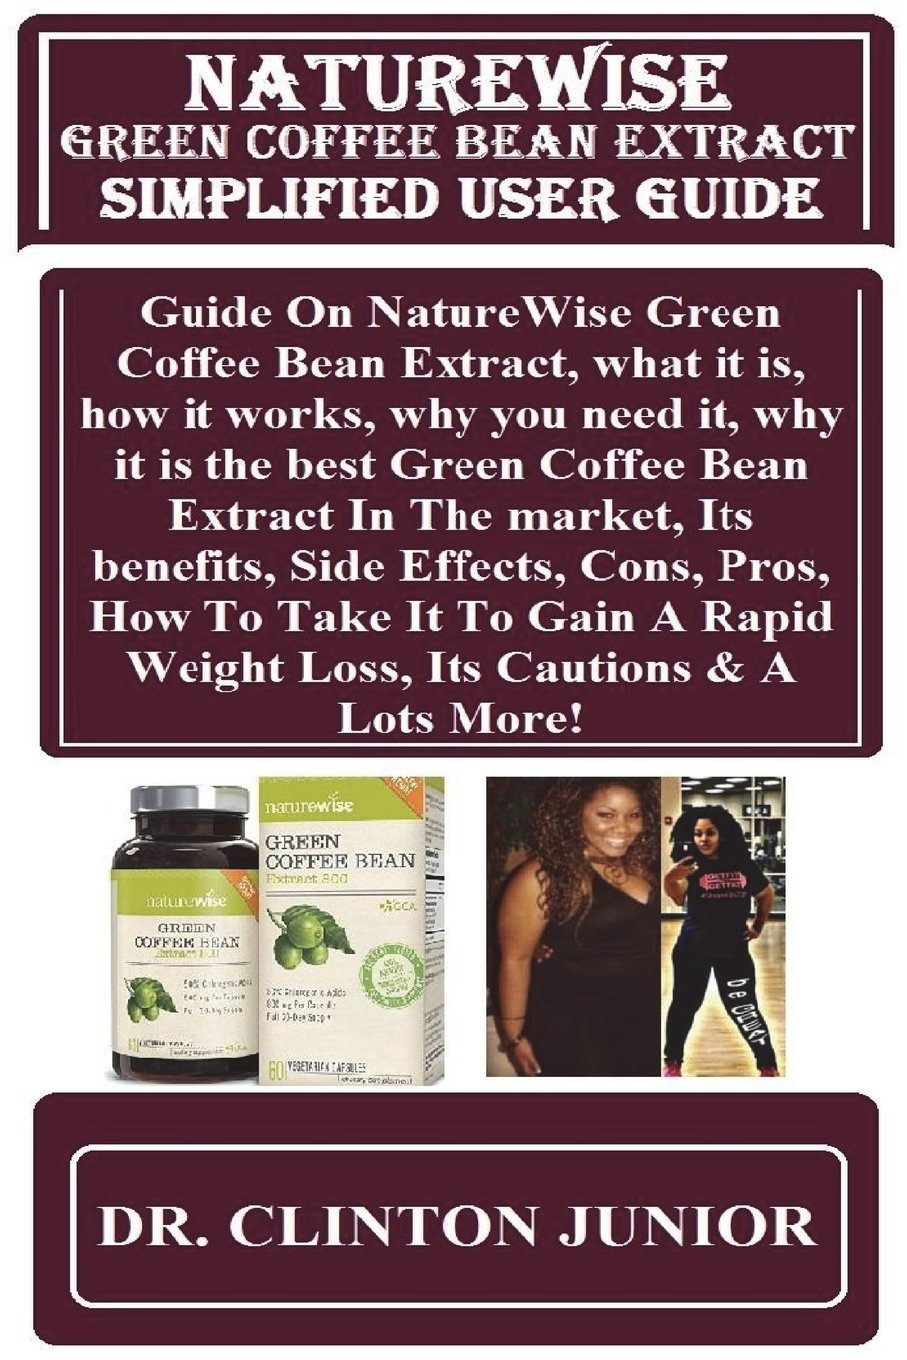 Did green coffee bean extract work for you